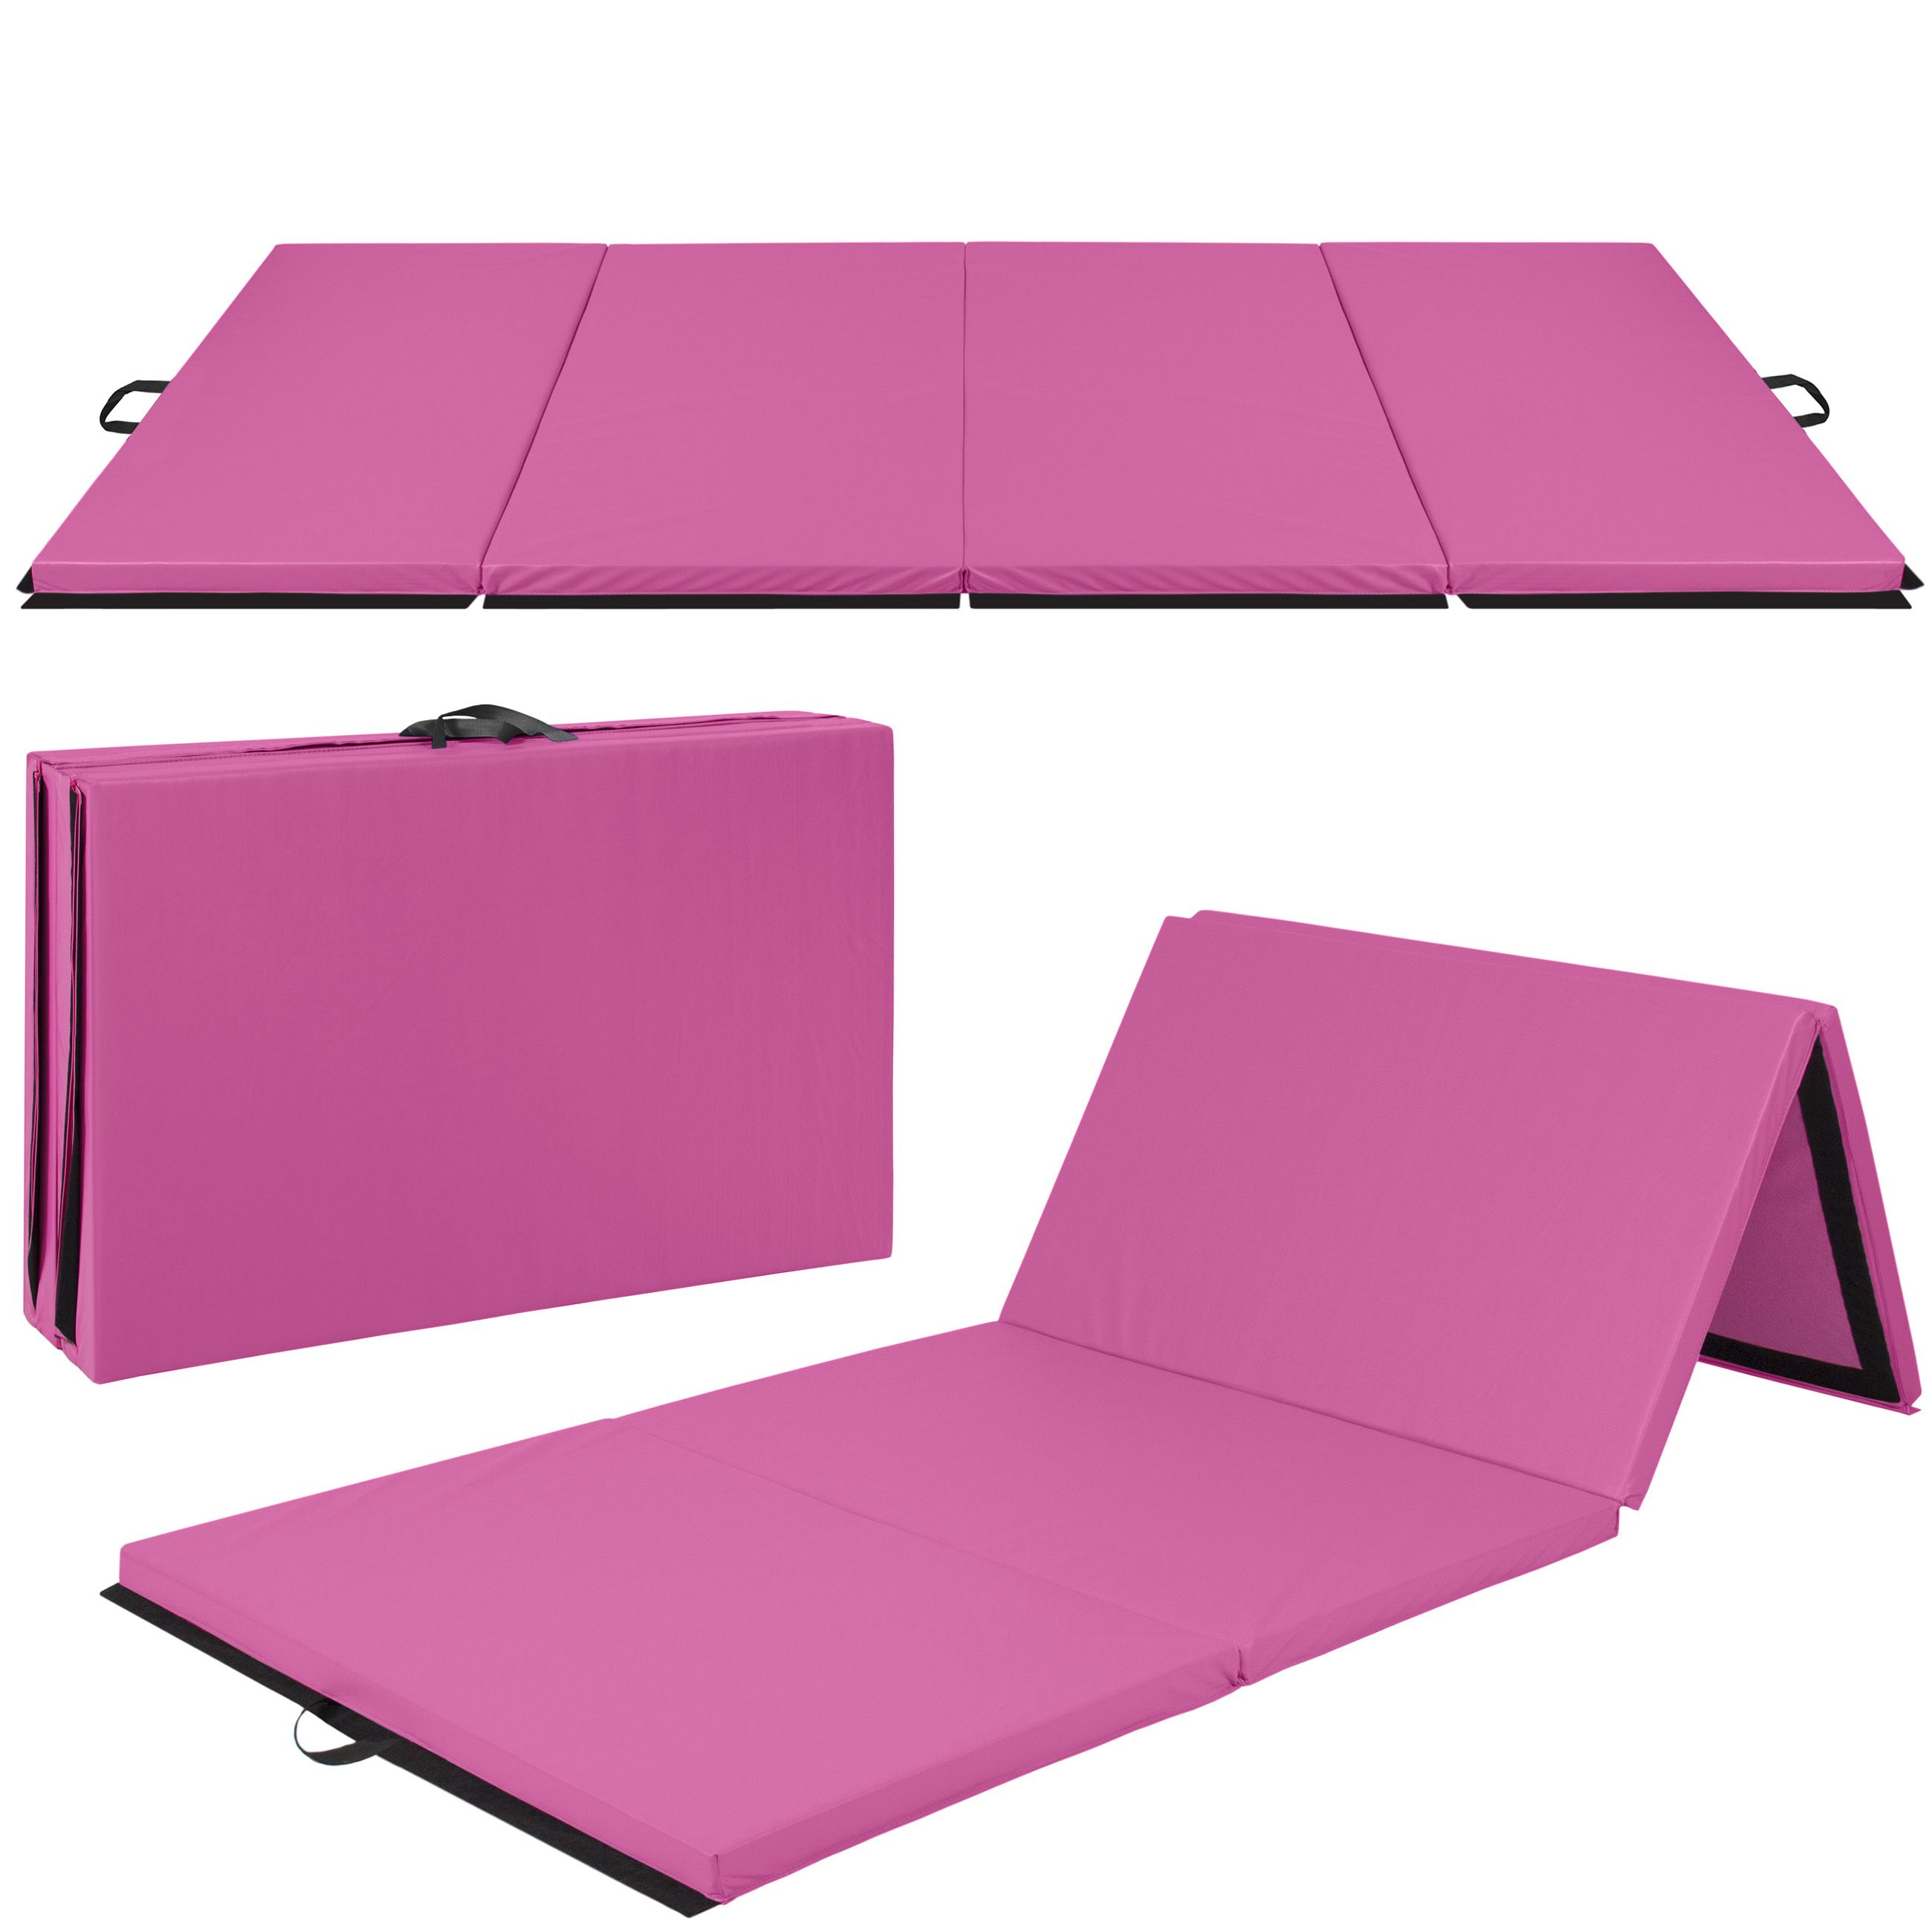 for mats tone yoga thick kp gymnastics sale c fitness used x mat